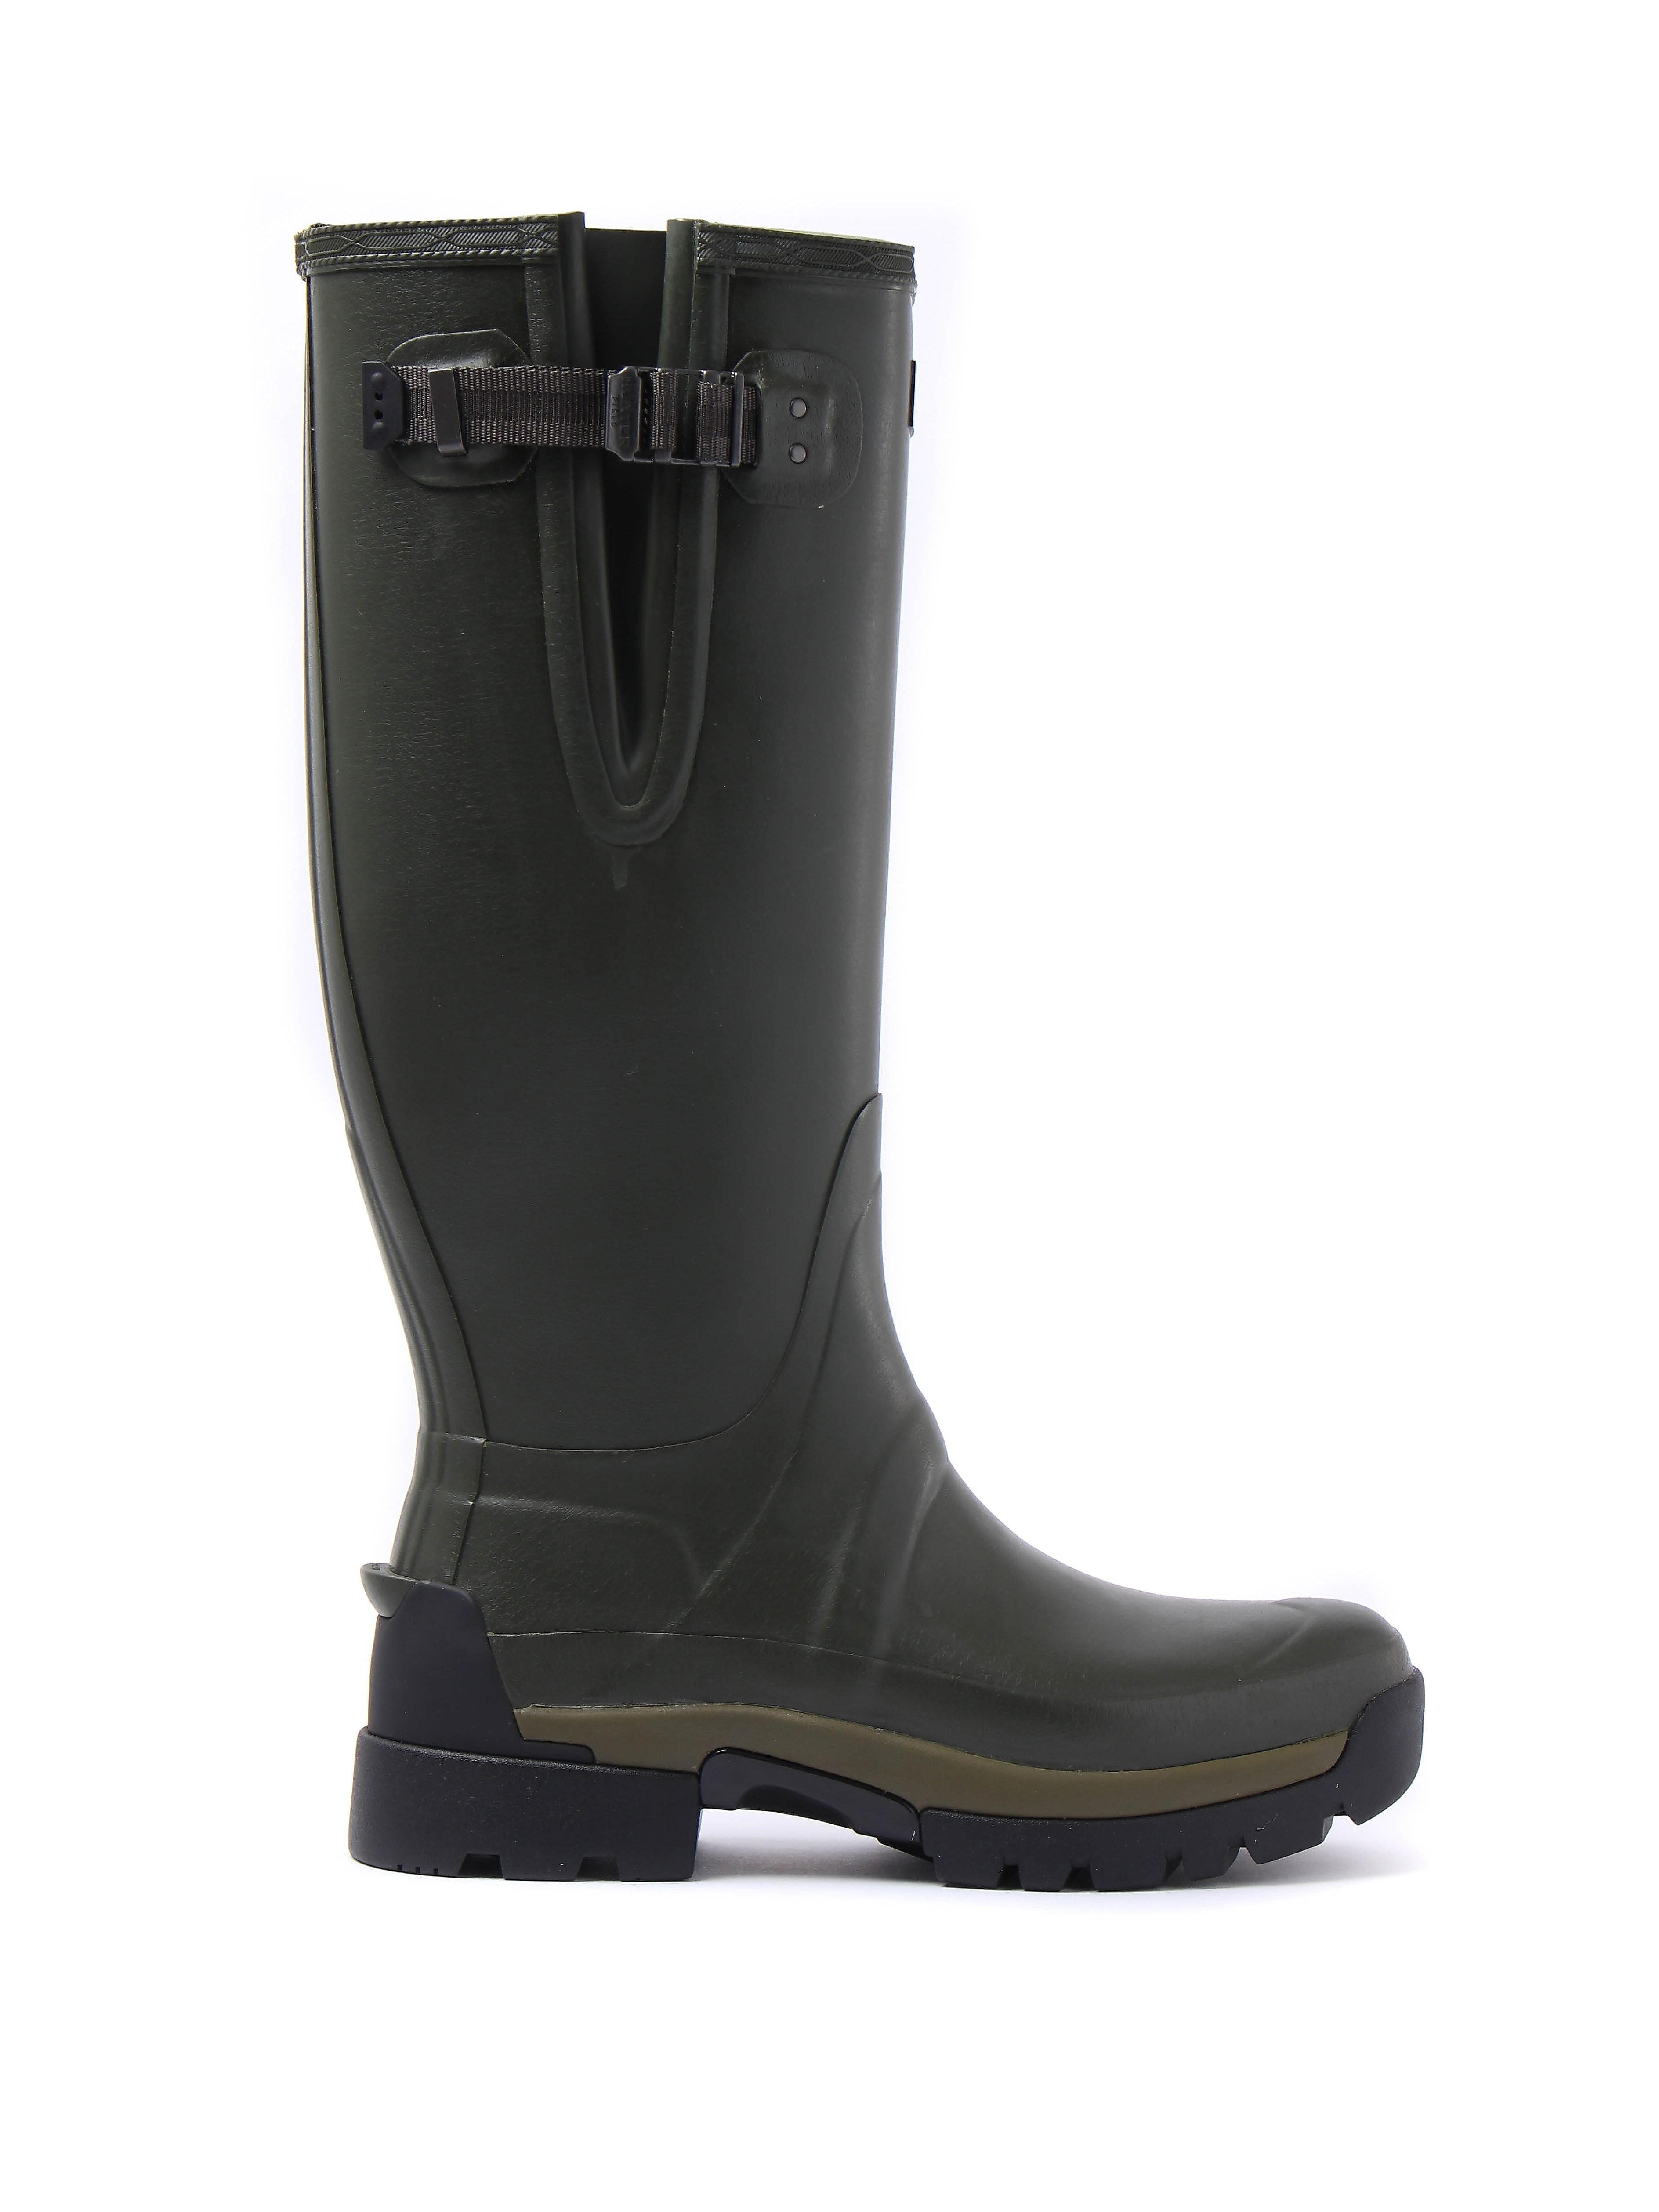 Hunter Wellies Men's Balmoral Tall Adjustable  Wellington Boots - Dark Olive